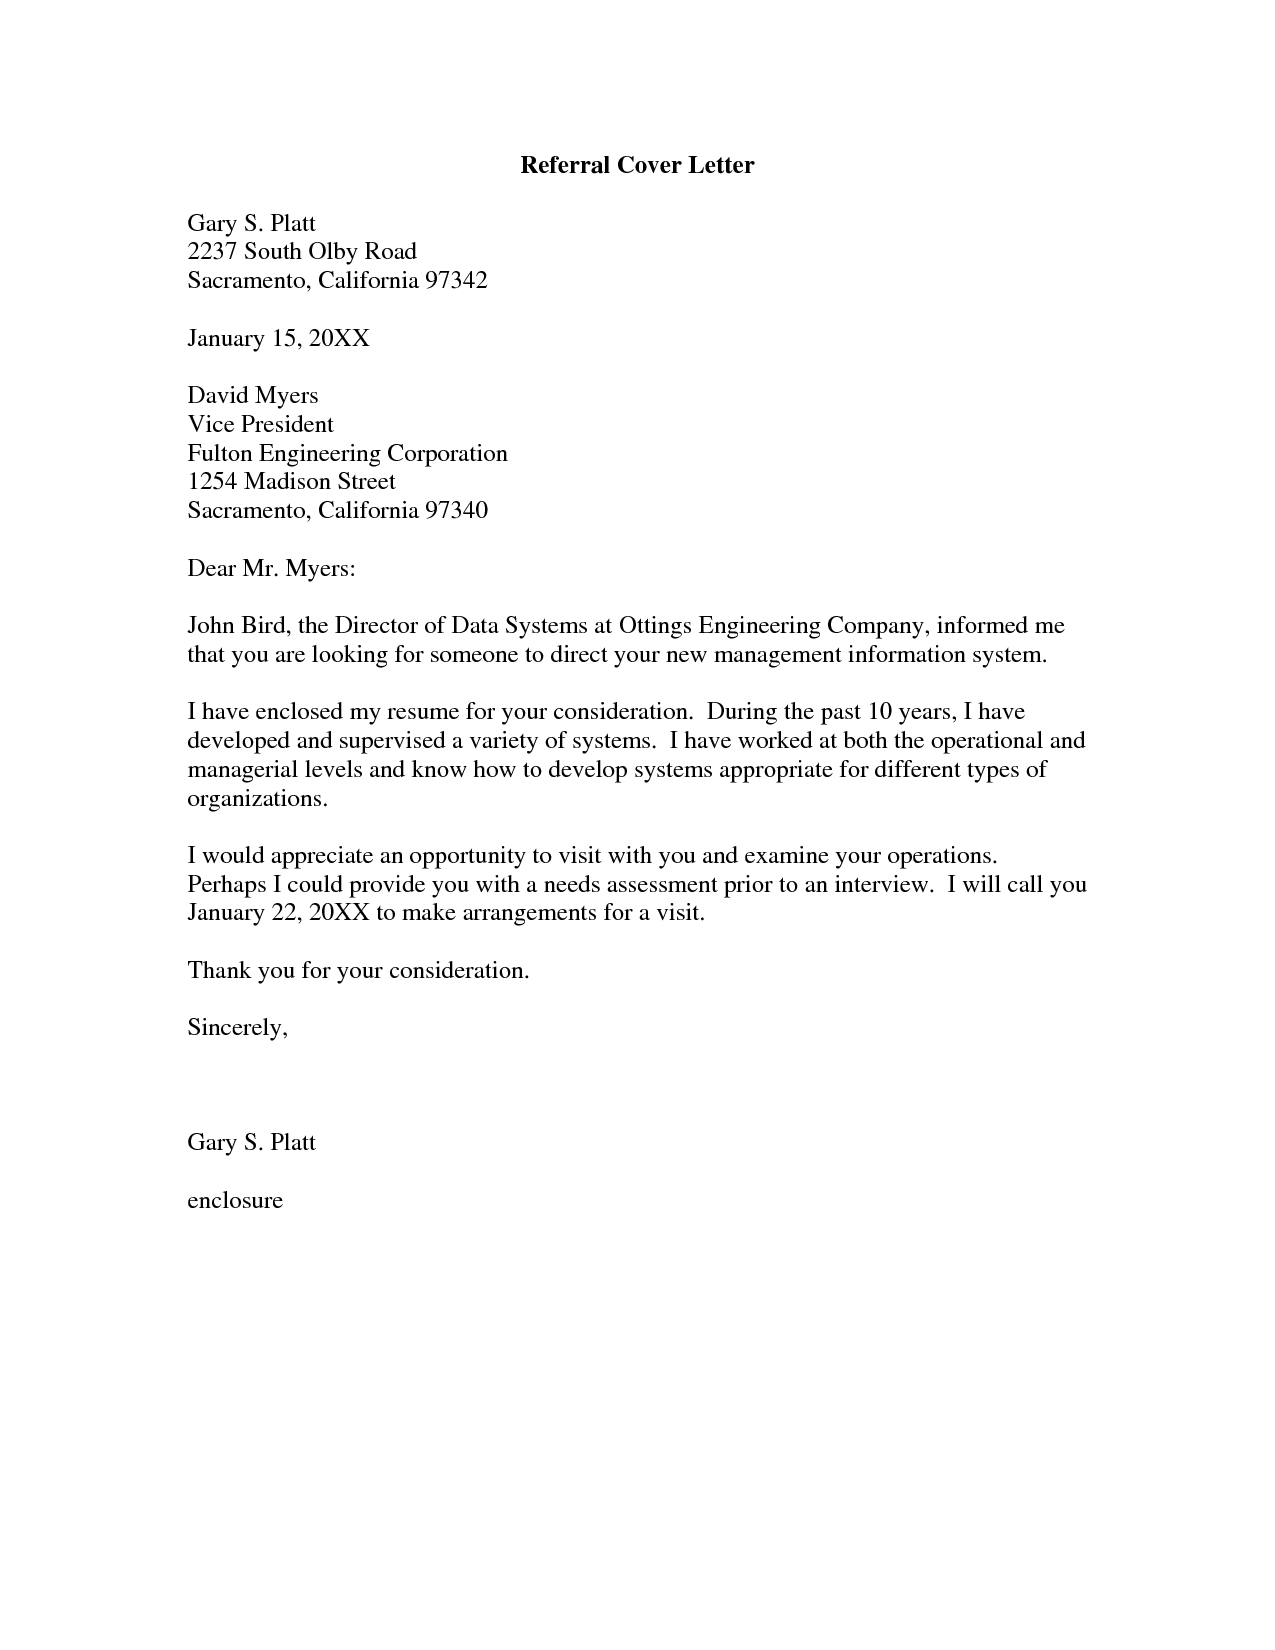 referral cover letter | cover letter | Cover letter example, Resume ...